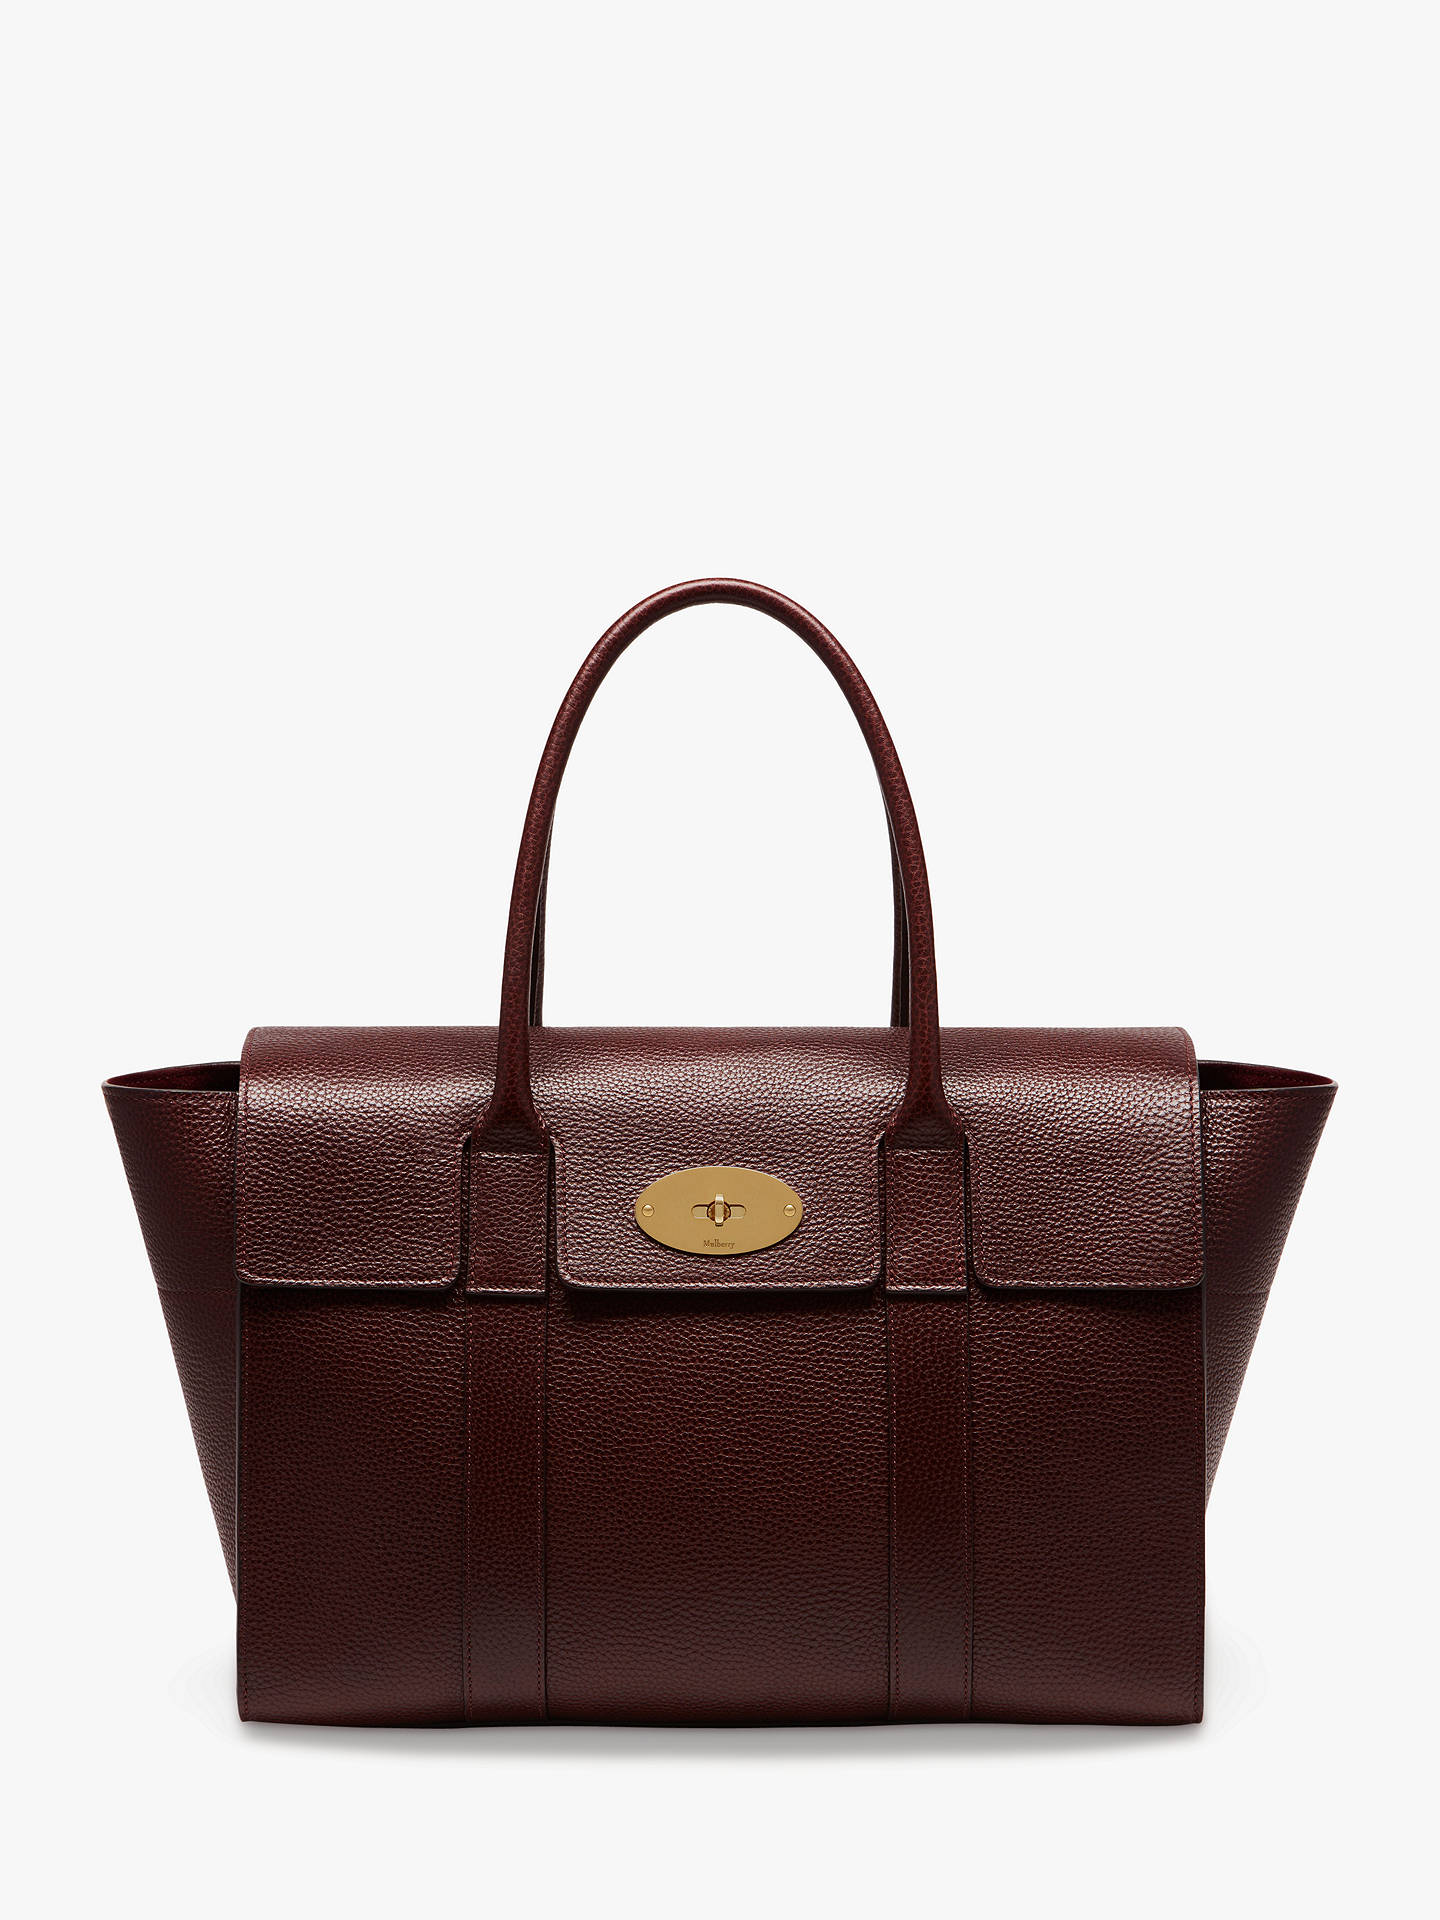 Mulberry Bayswater New Grain Veg Tanned Leather Handbag at John ... 3fd688a1d365a